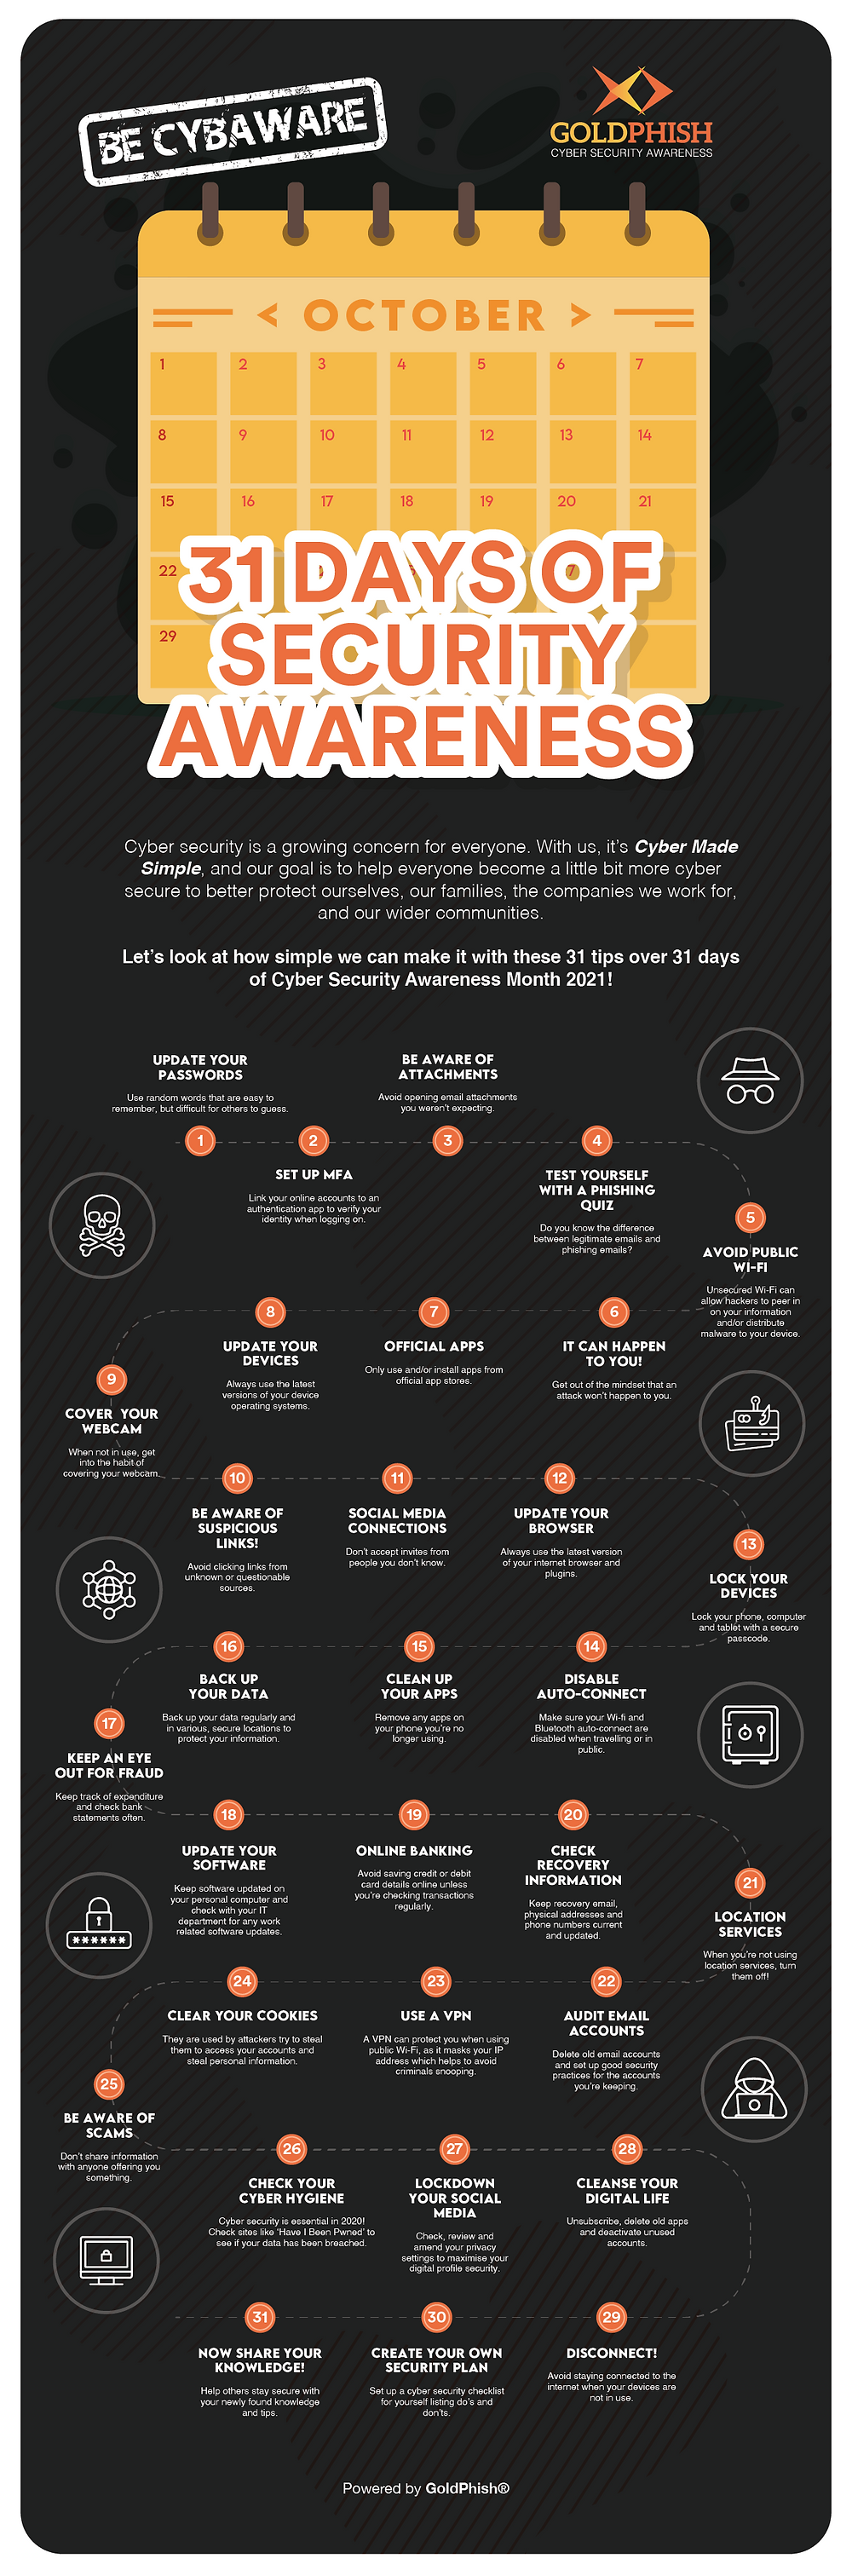 Cyber Security Awareness Month Infographic